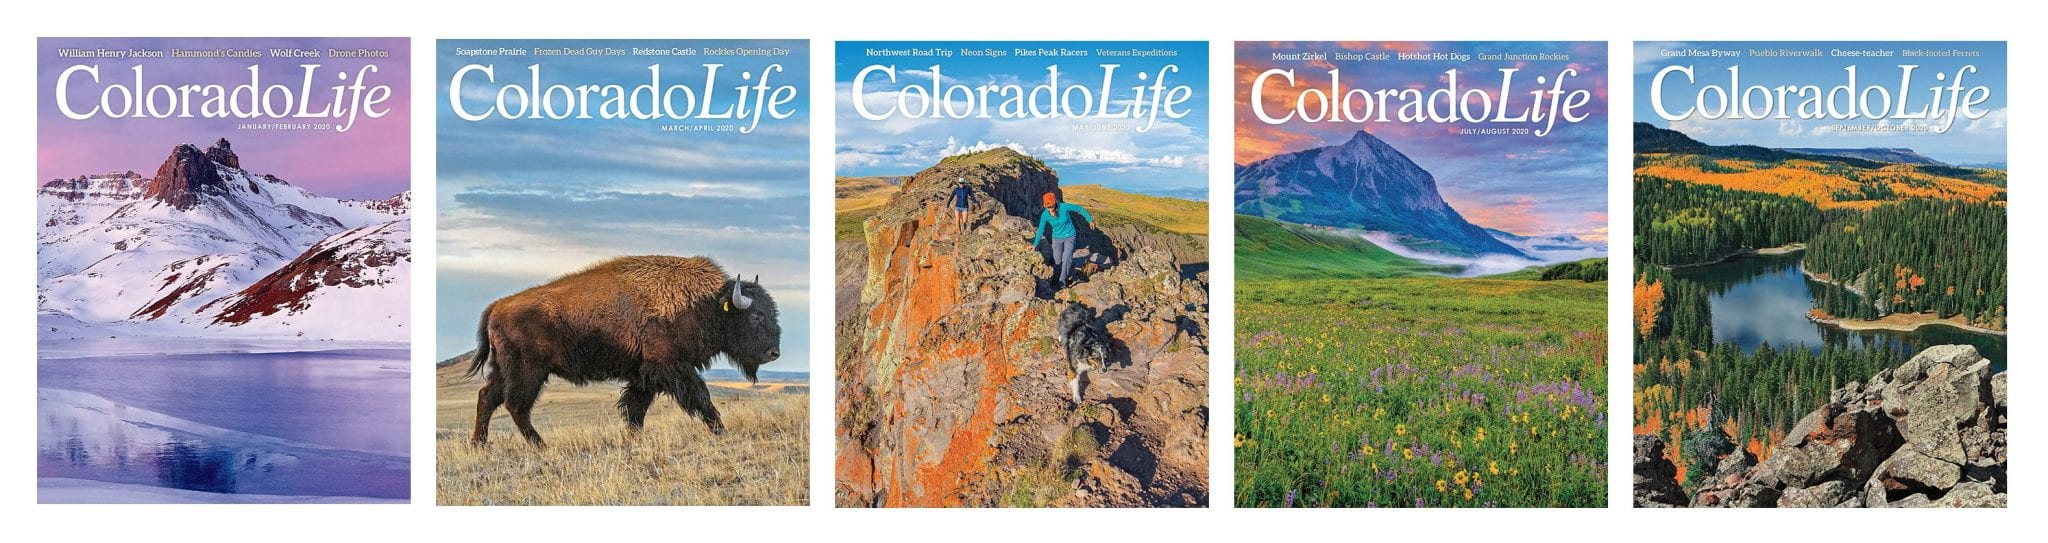 colorado life magazine